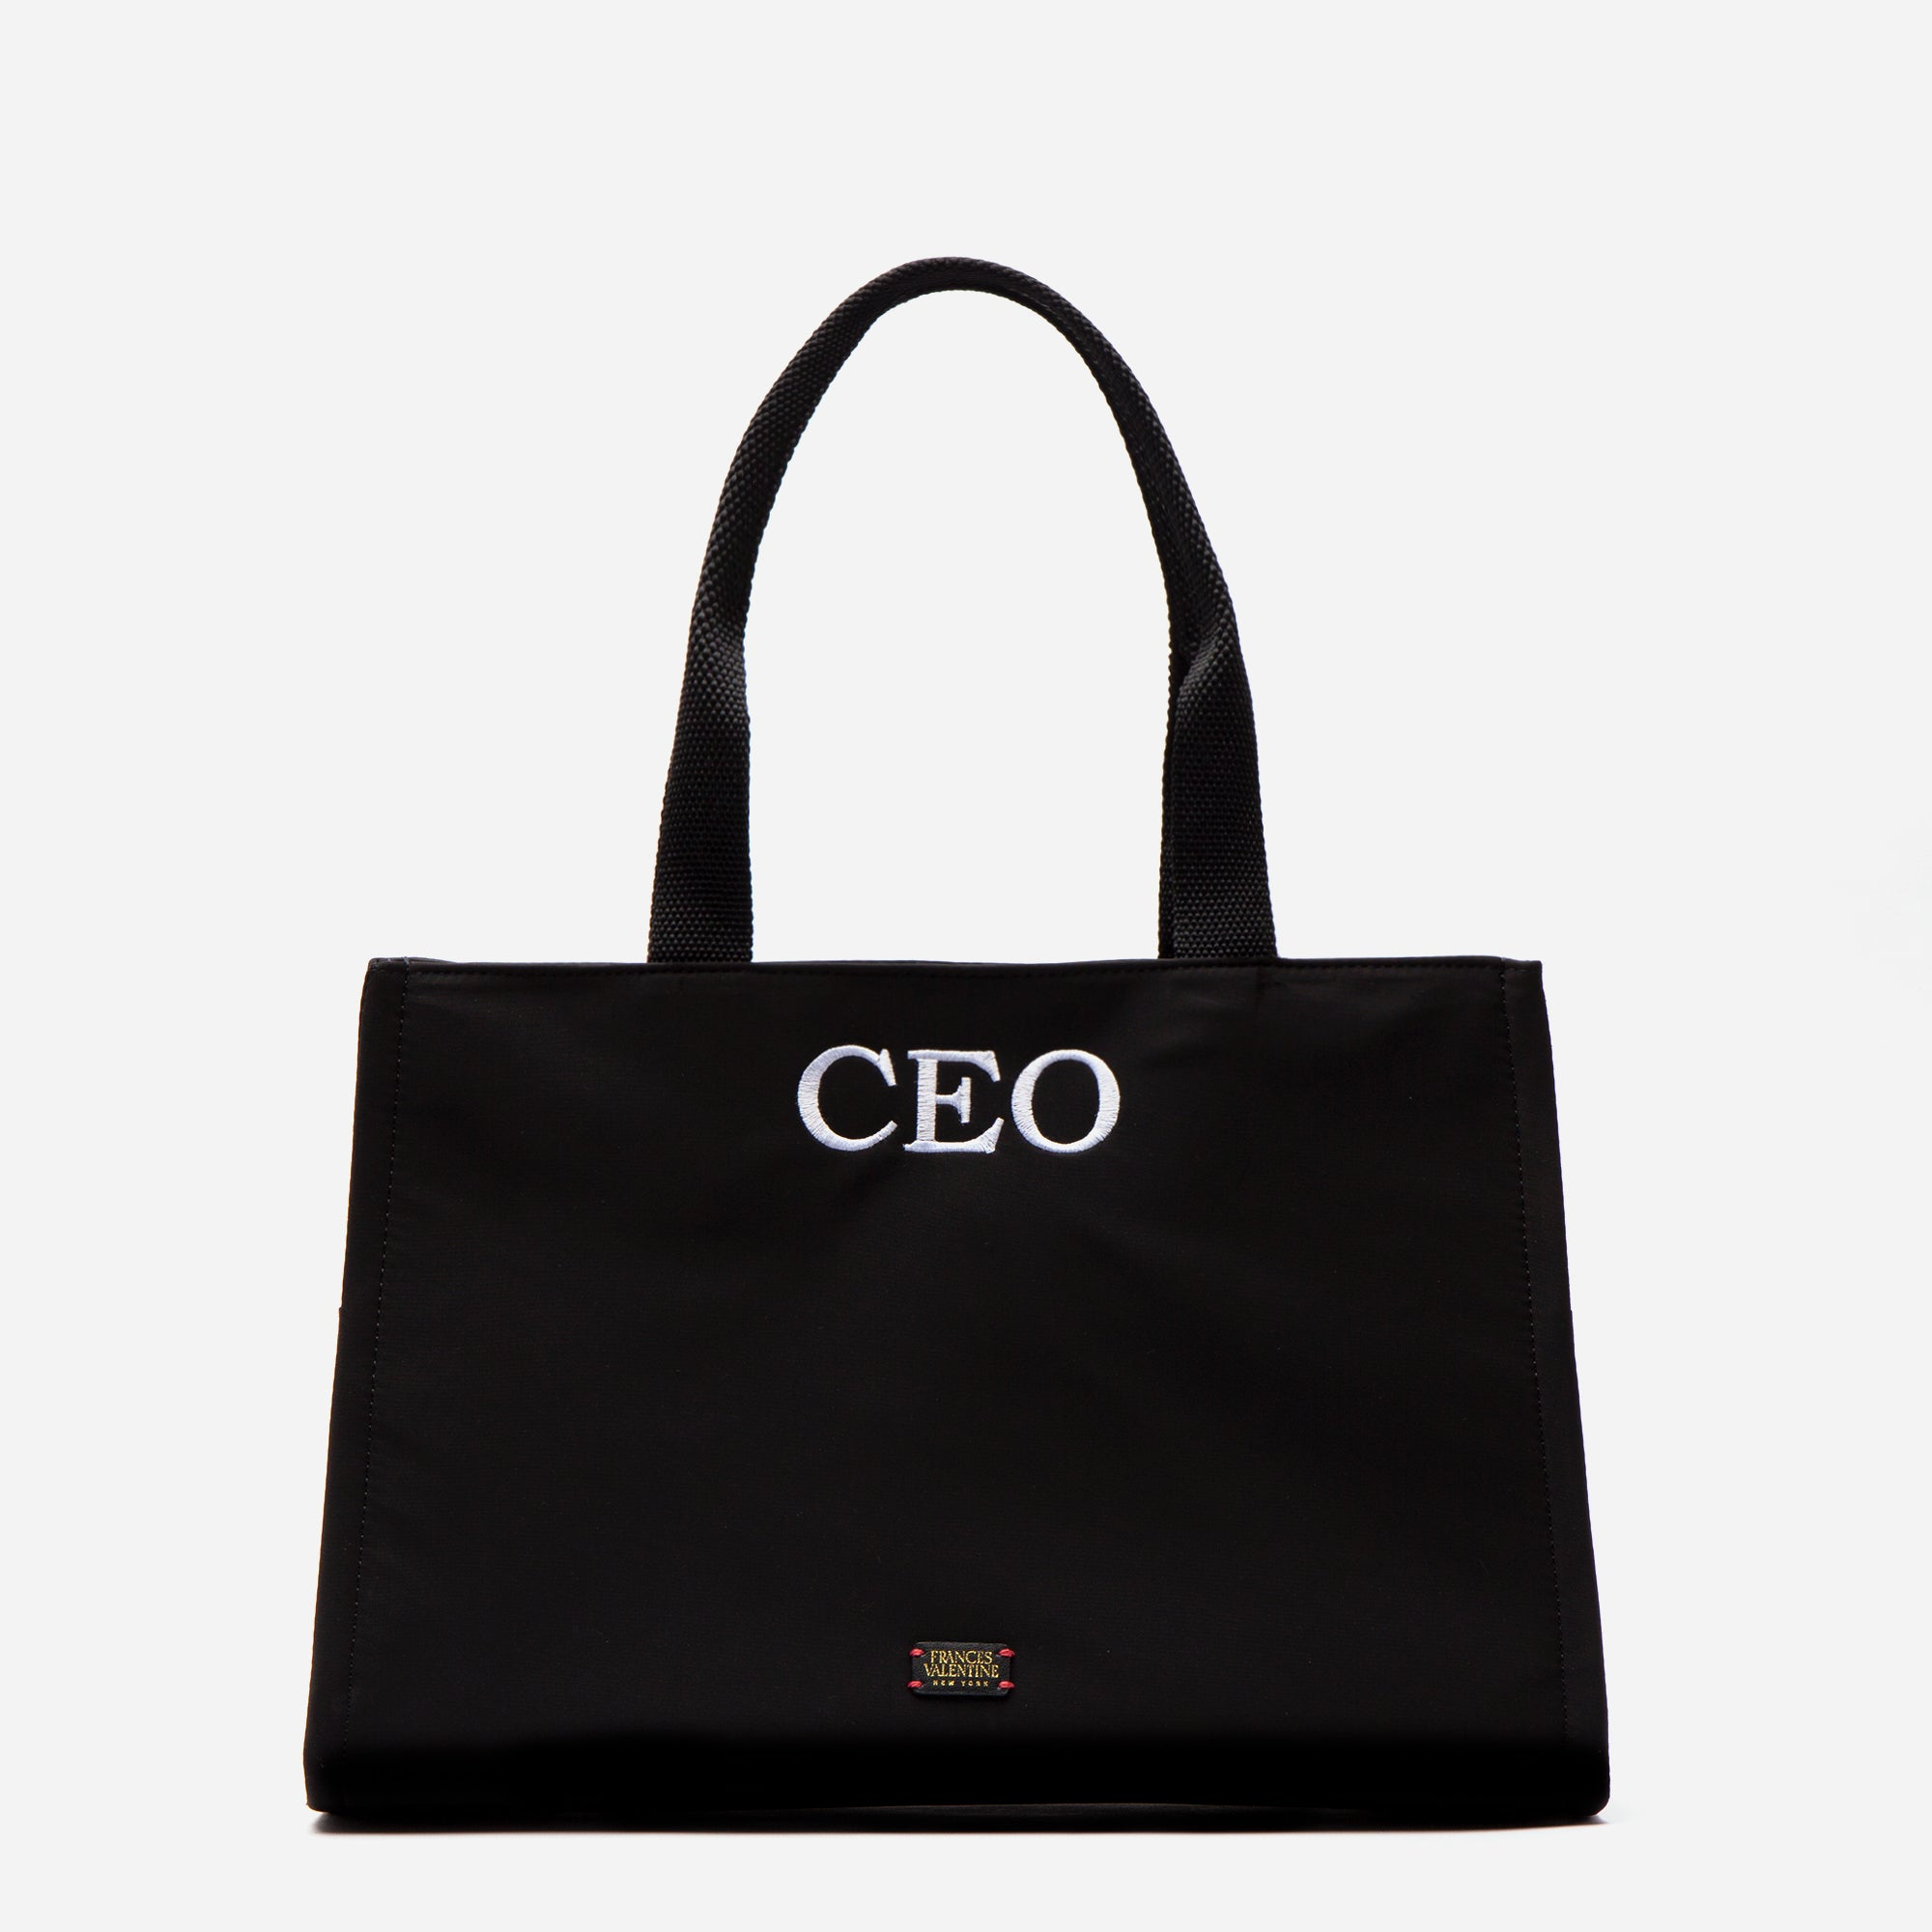 Limited Edition Embroidered Kate Shoulder Tote CEO